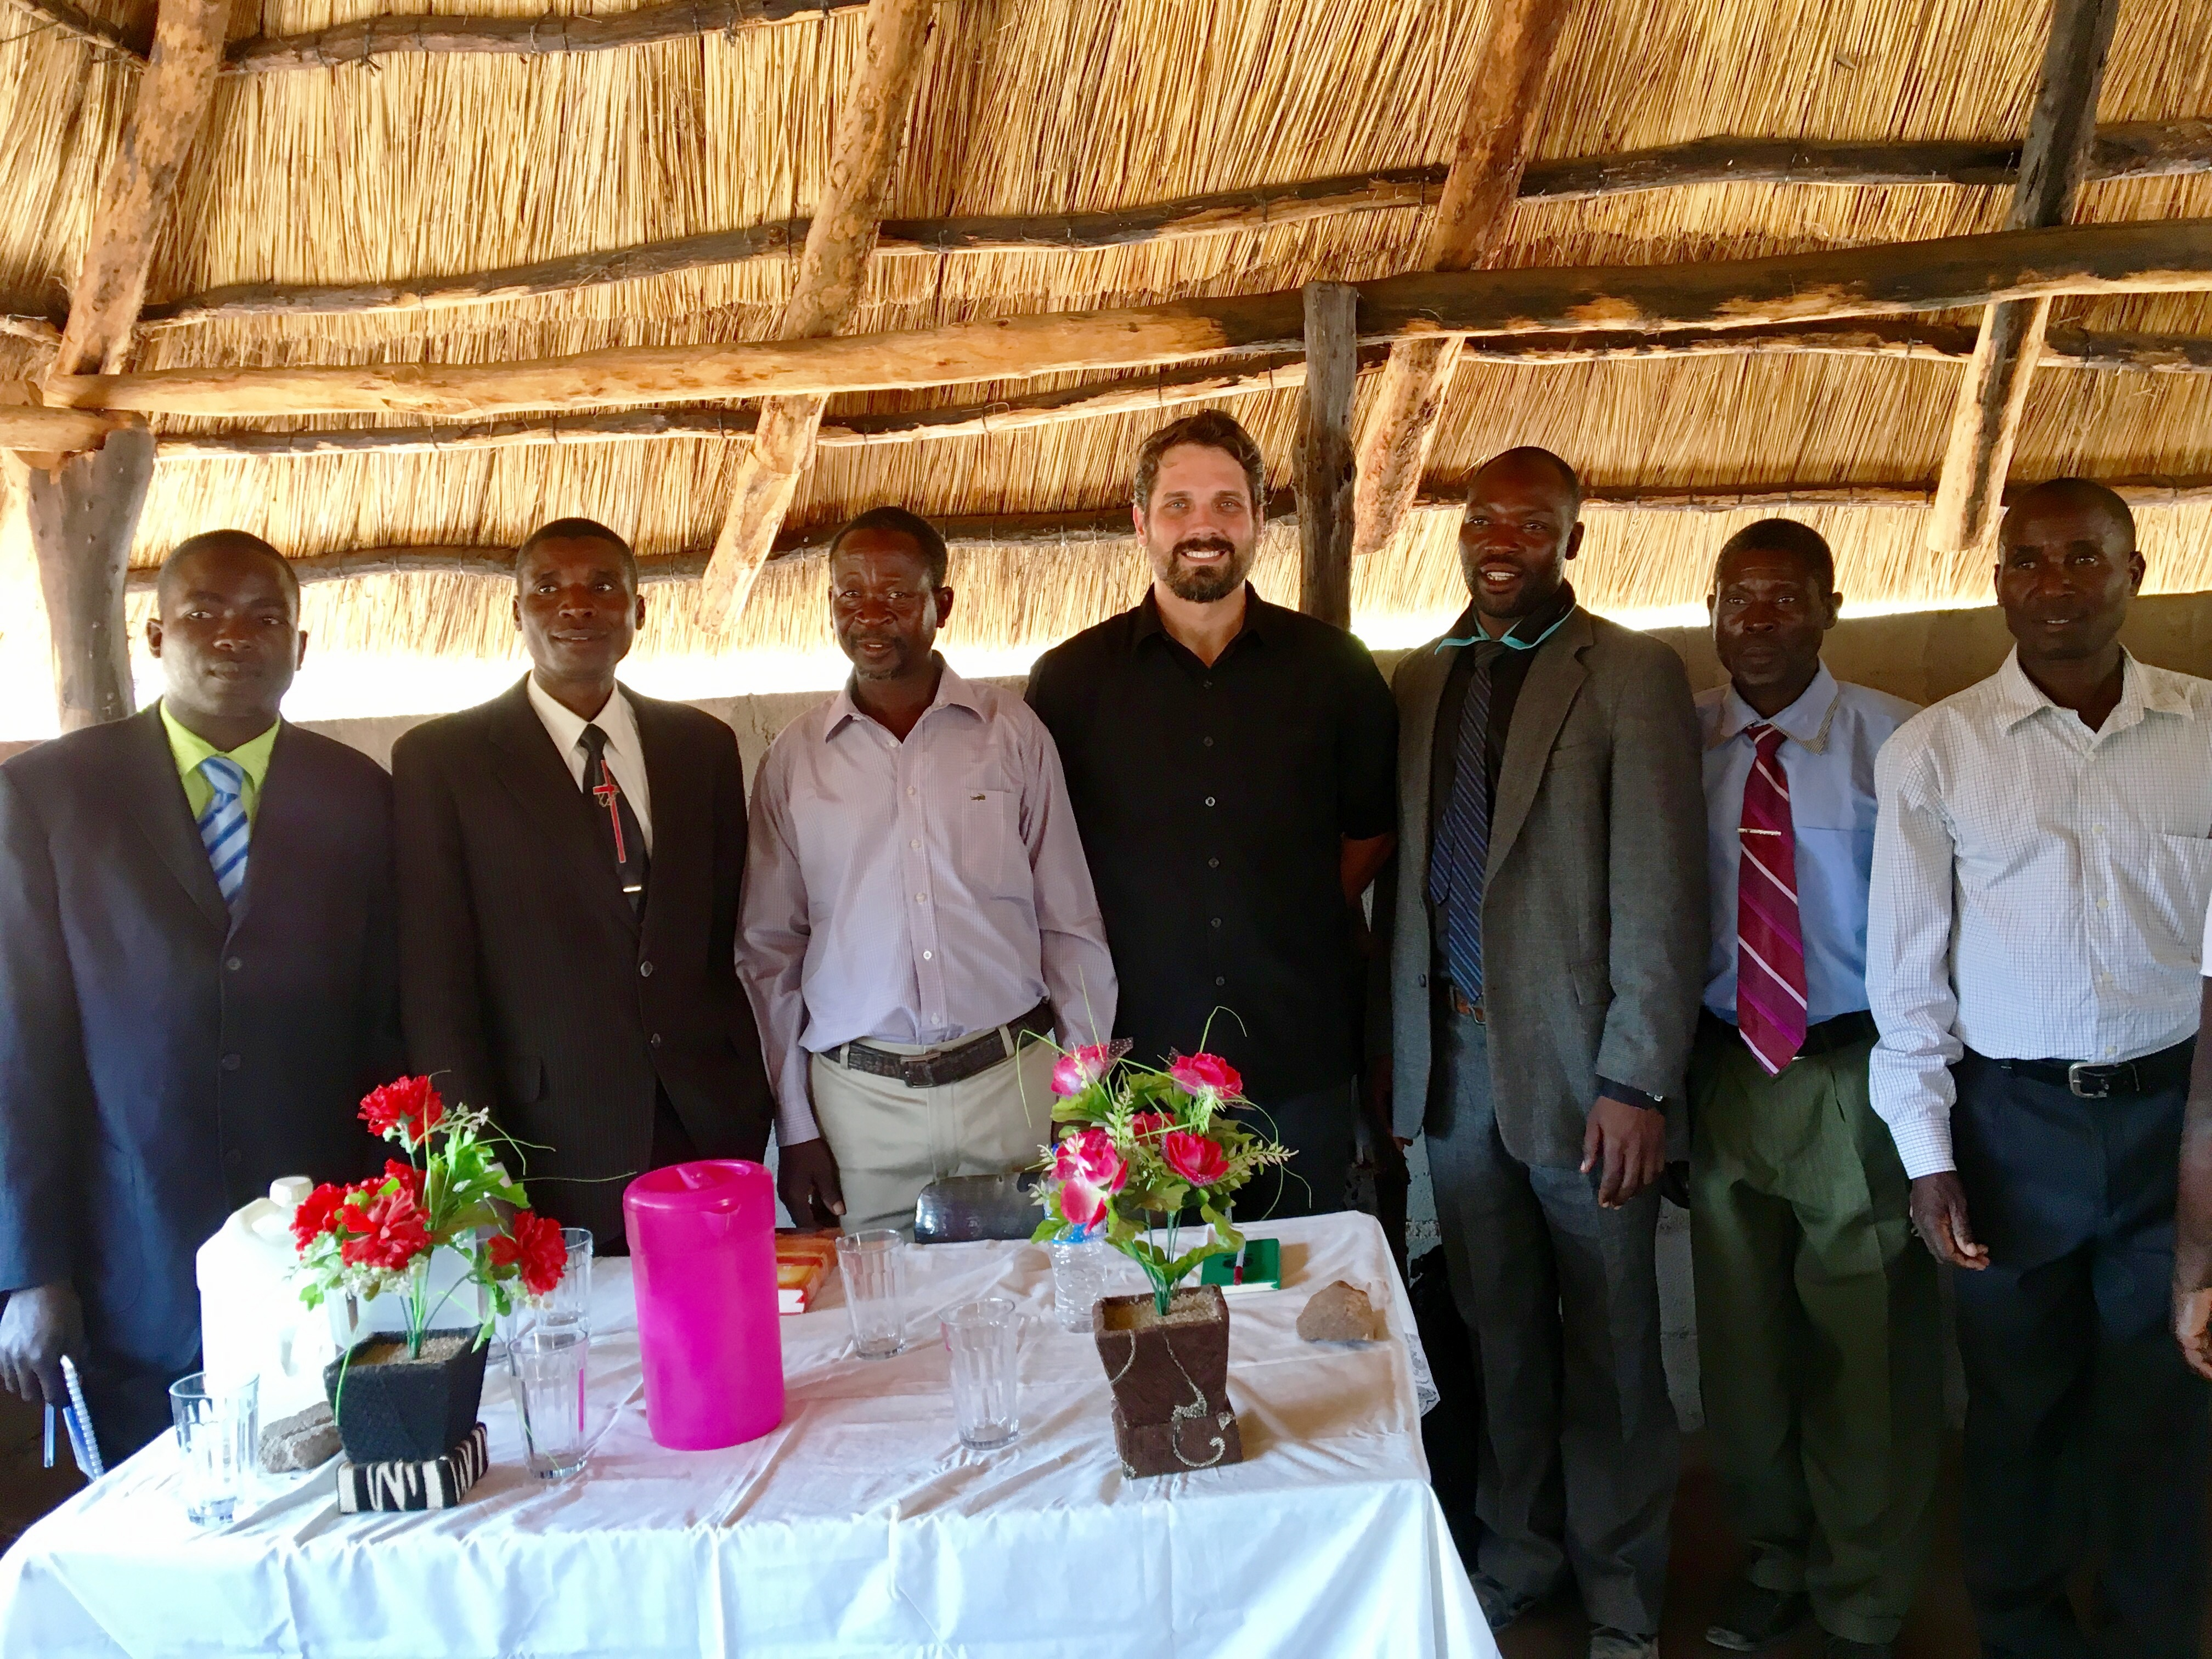 zimbabwe-church-leaders-with-mike-webb